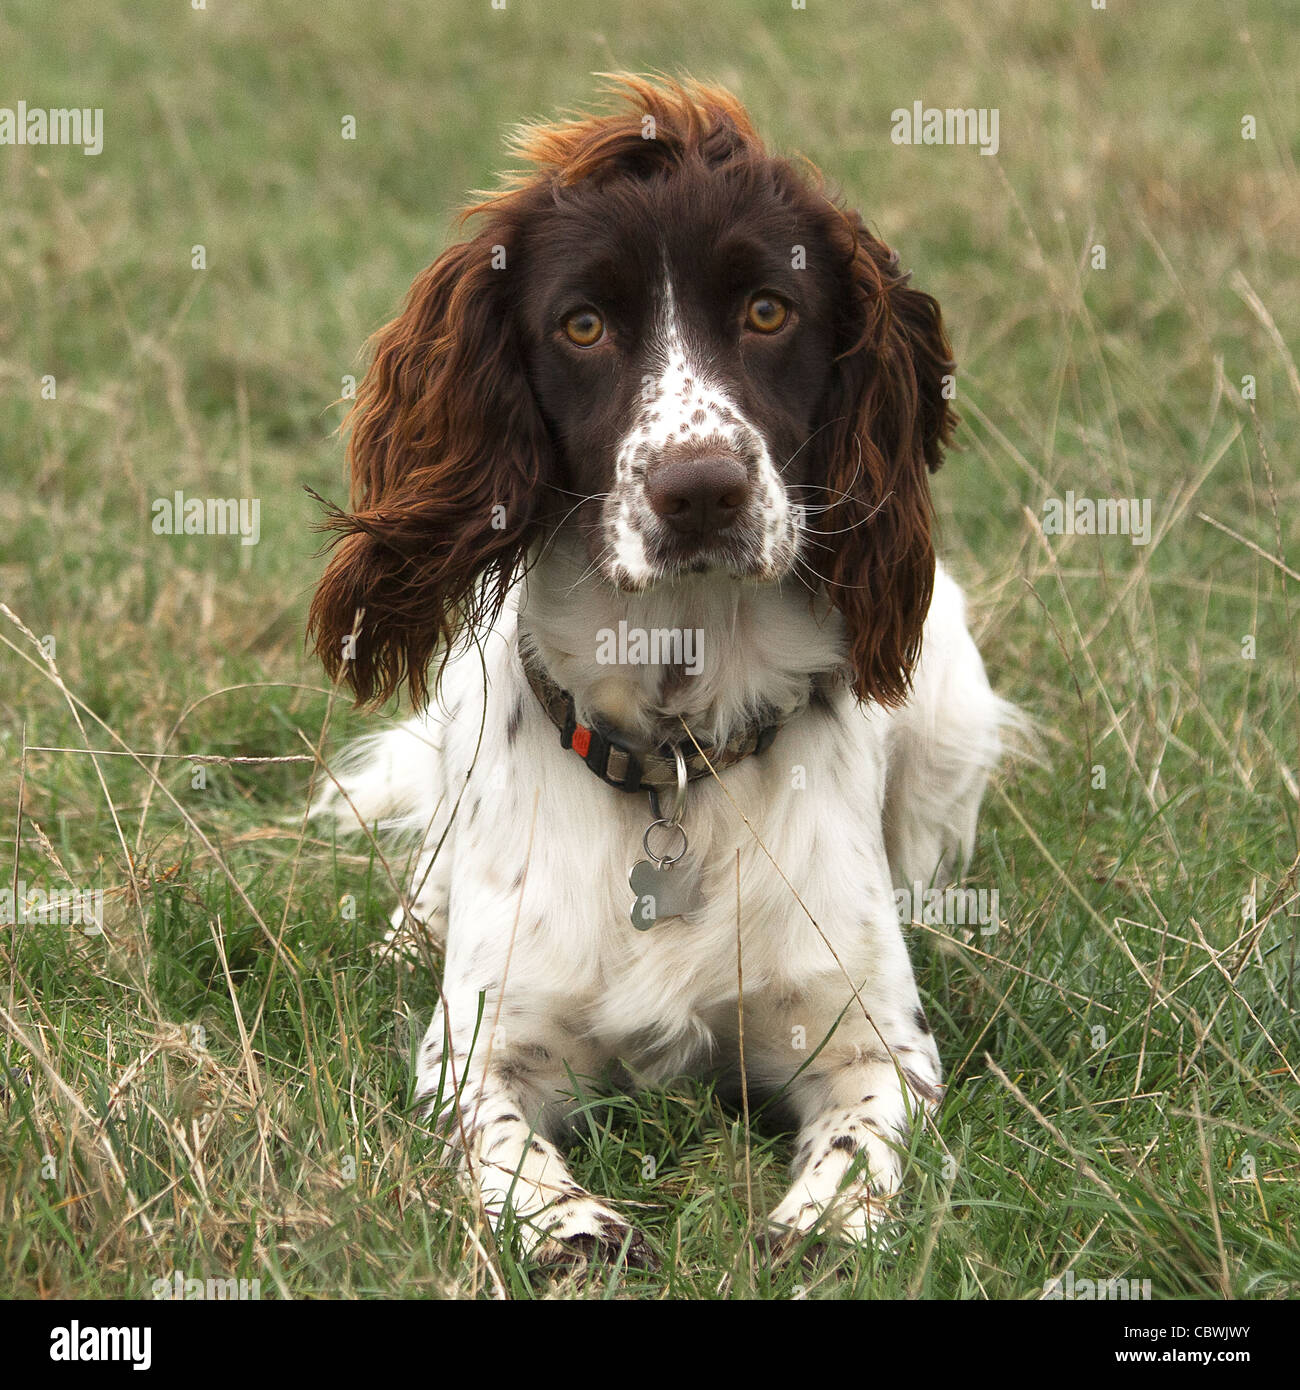 liver and white springer spaniel dog brown laying down stock photo